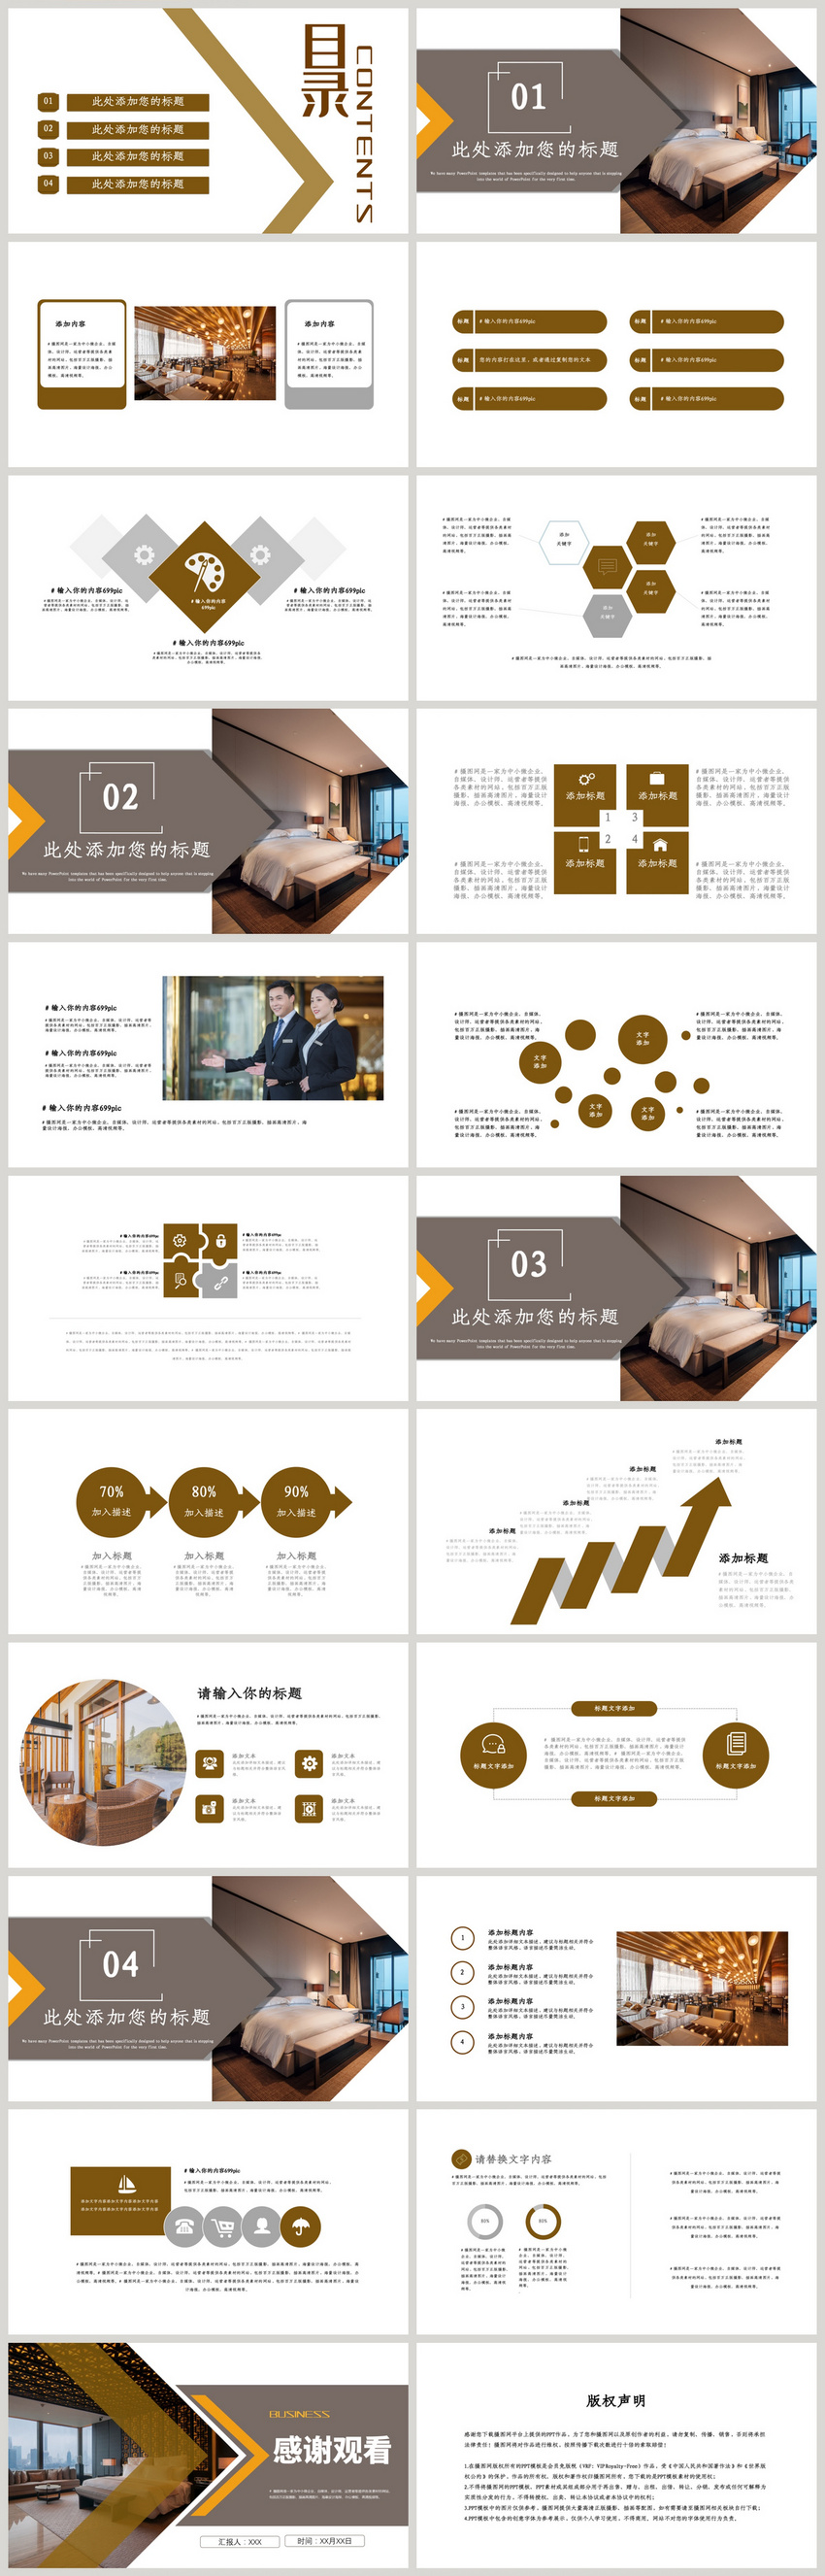 Hotel Industry Summary Ppt Template Powerpoint Templete Ppt Free Download 401411517 Lovepik Com